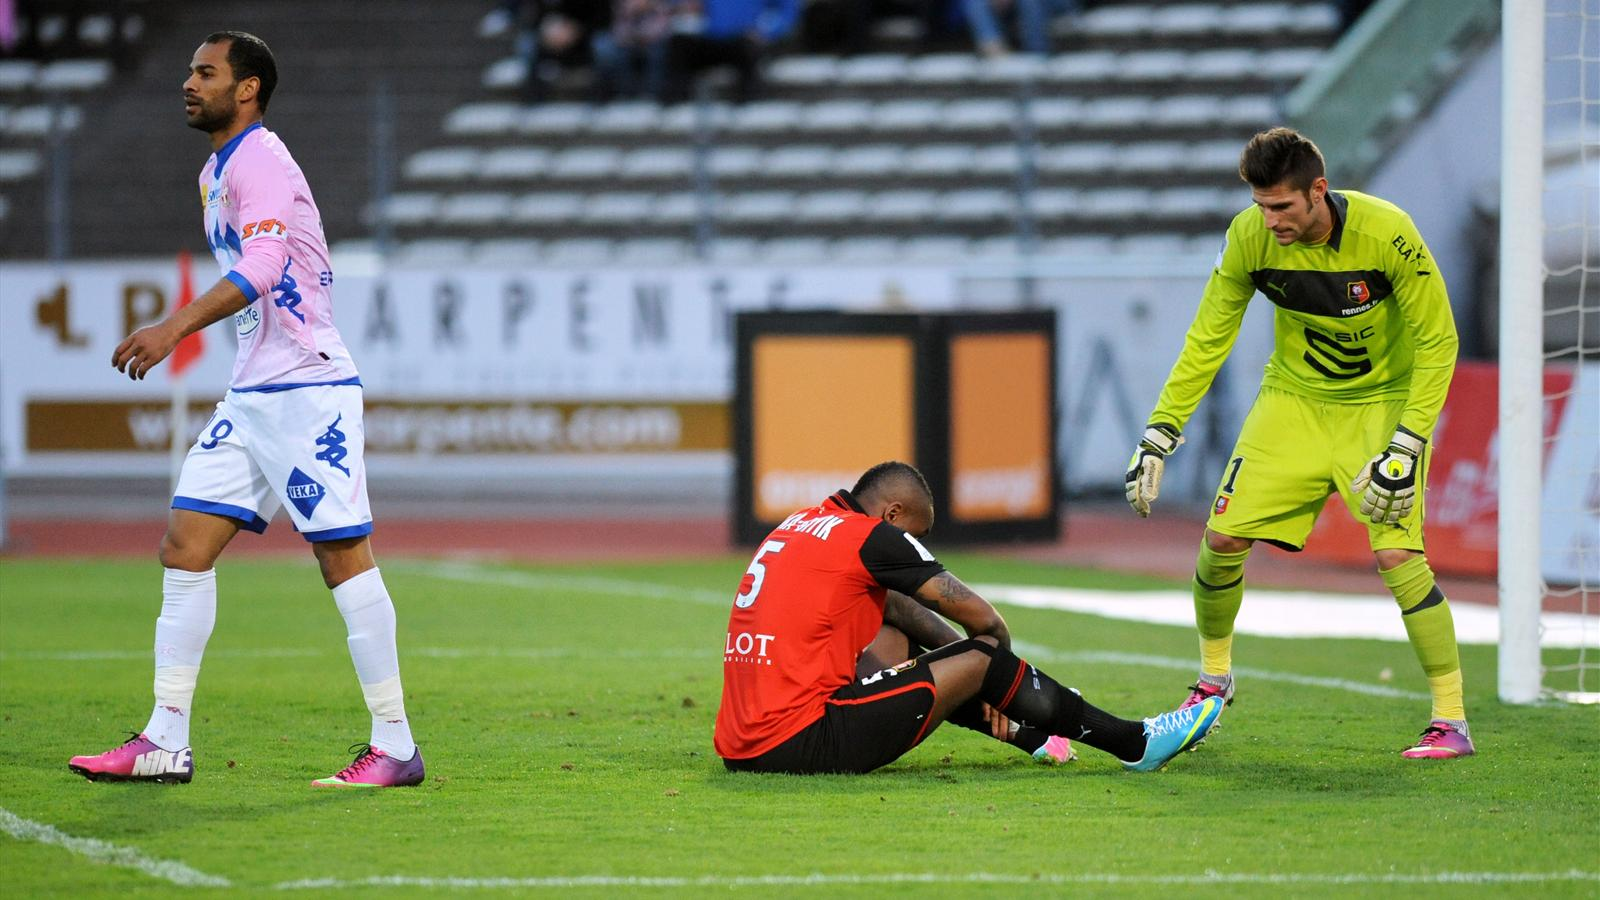 Rennes la coupe la grimace coupe de la ligue 2012 2013 football eurosport - Coupe de la ligue 2013 14 ...